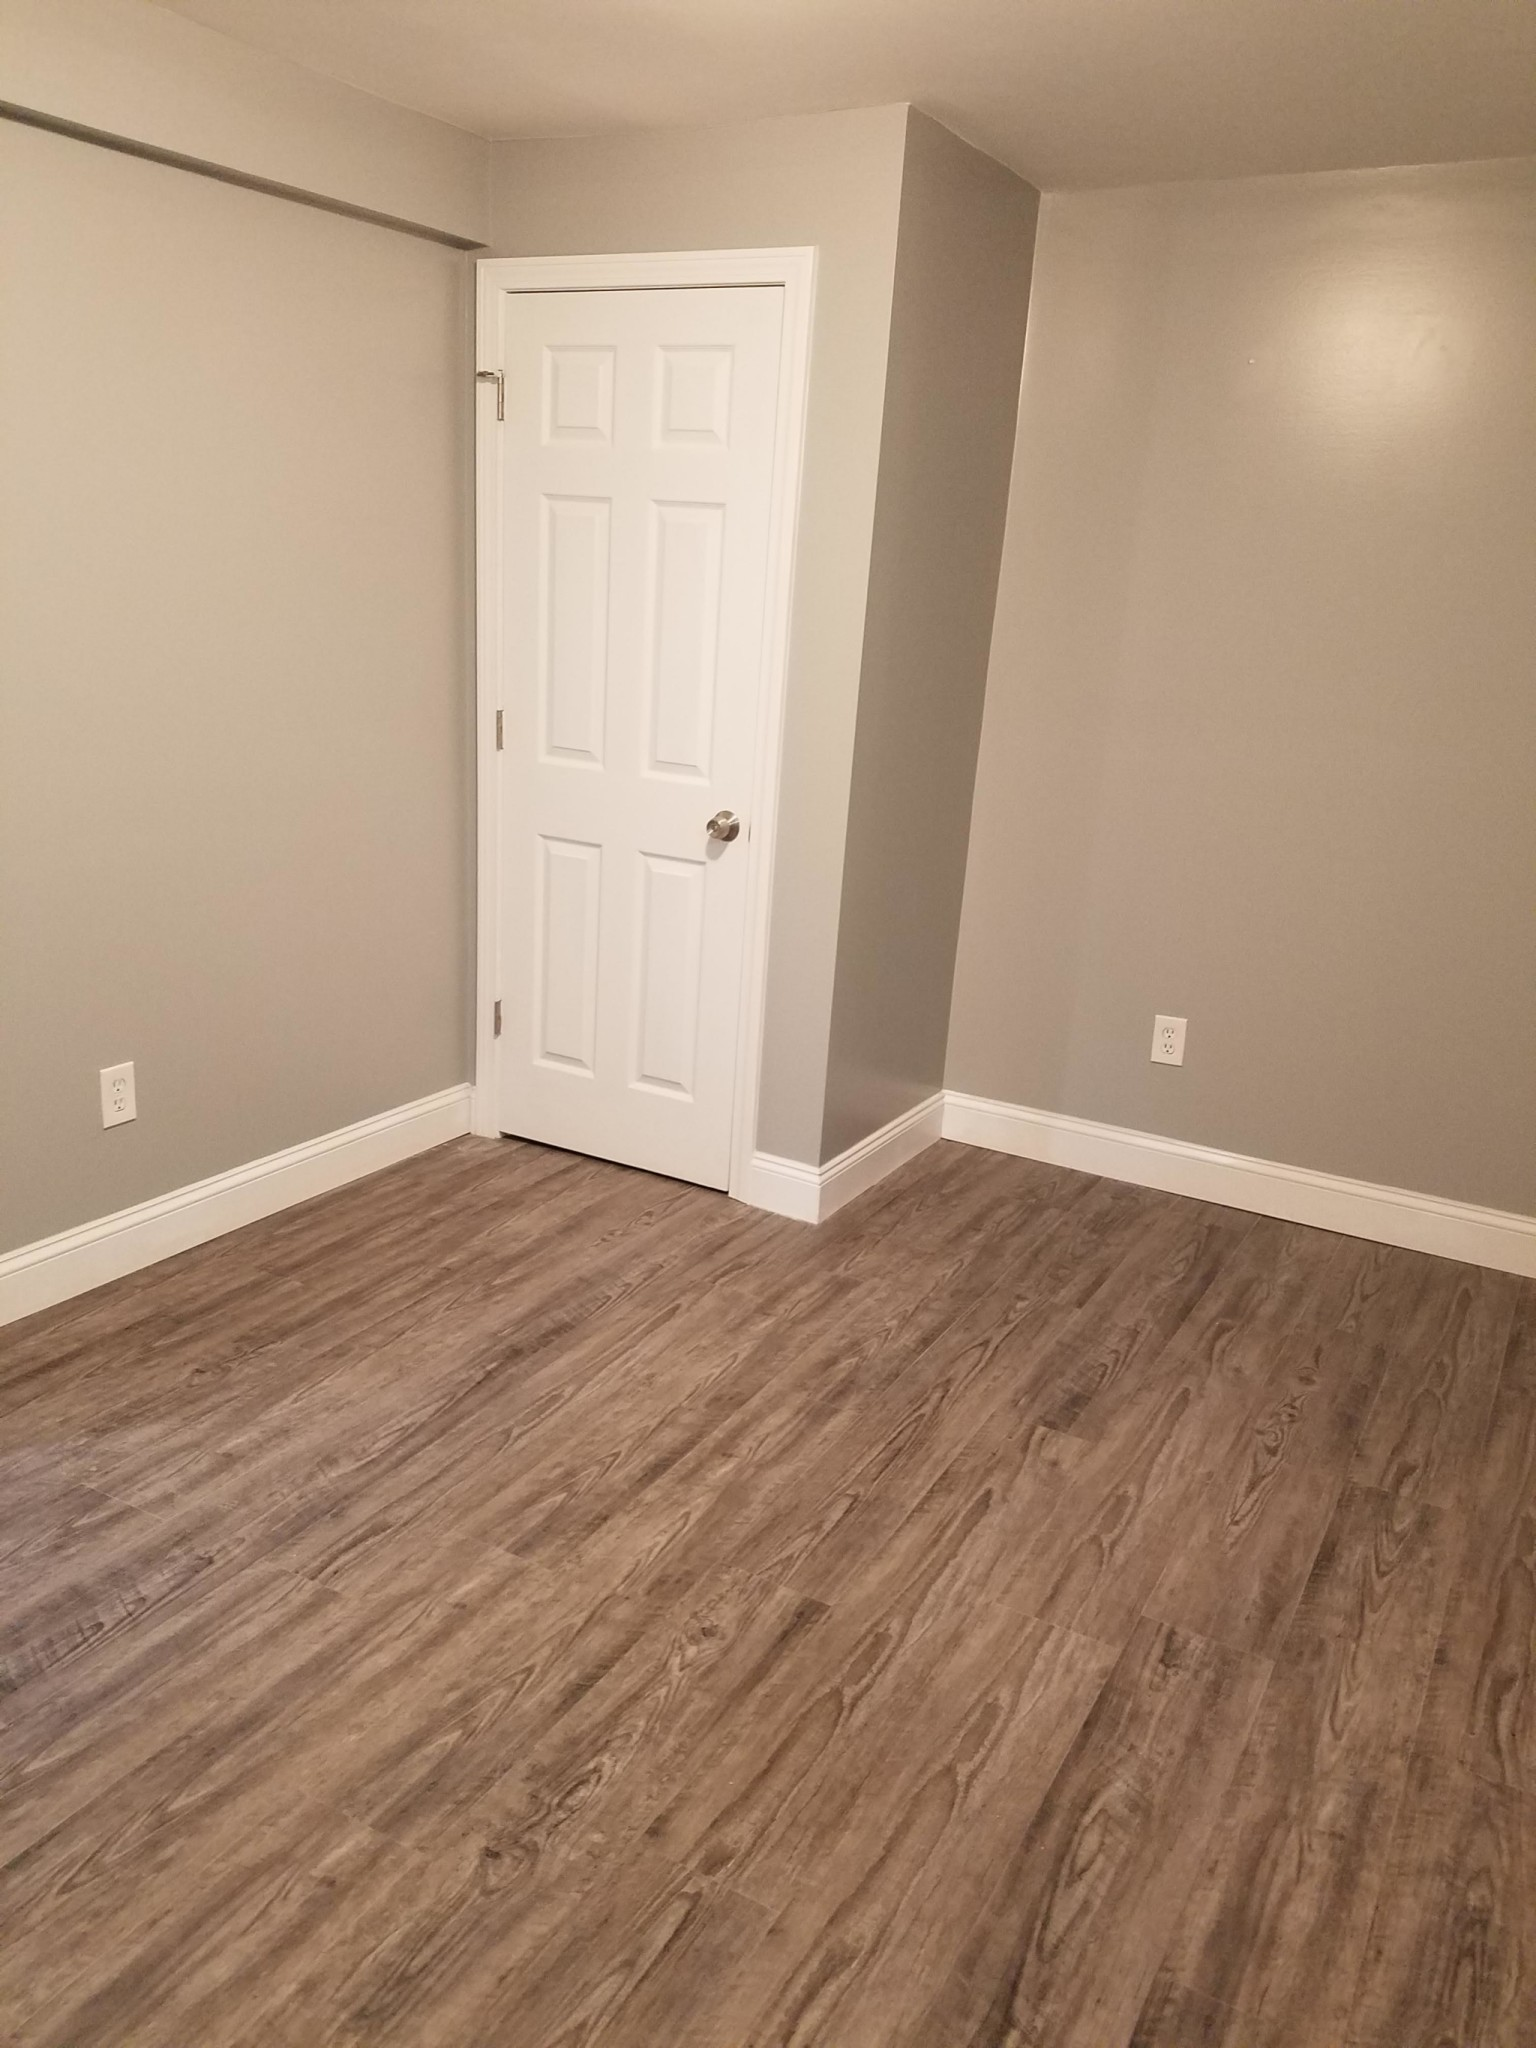 3 Beds, 1 Bath apartment in Boston for $800